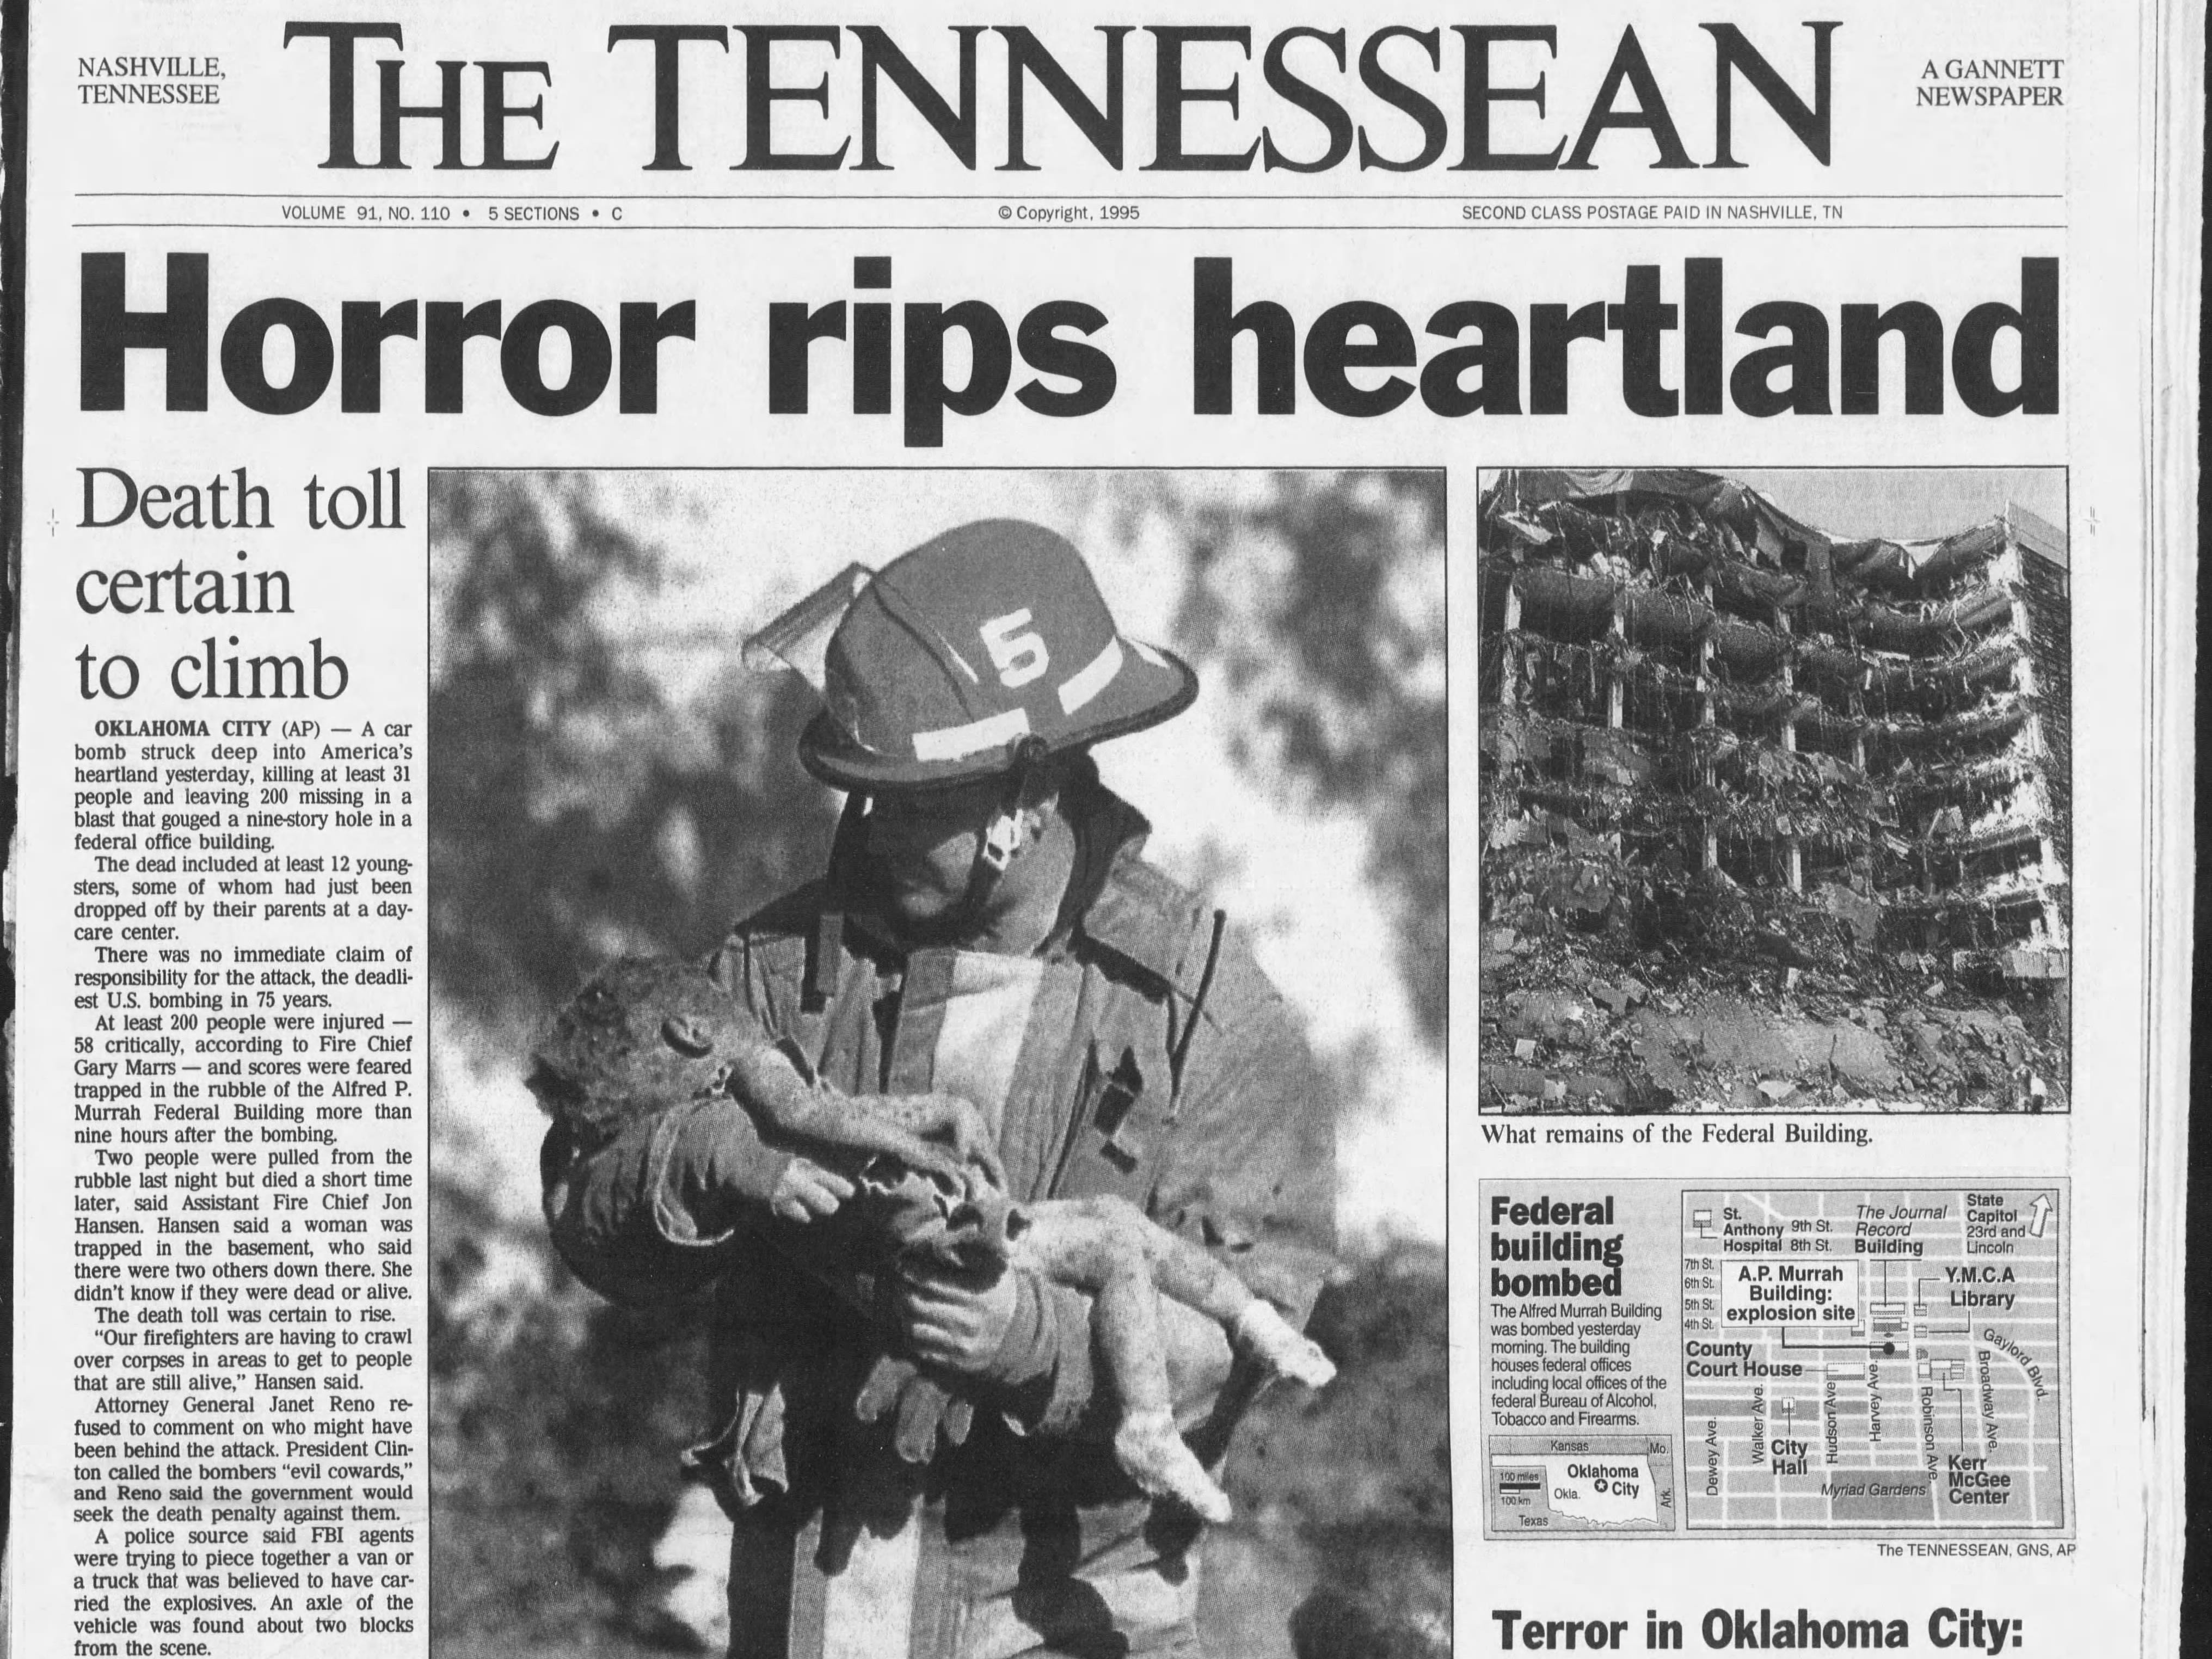 The front page of the April 20, 1995 of The Tennessean for the coverage of the Oklahoma City bombing.